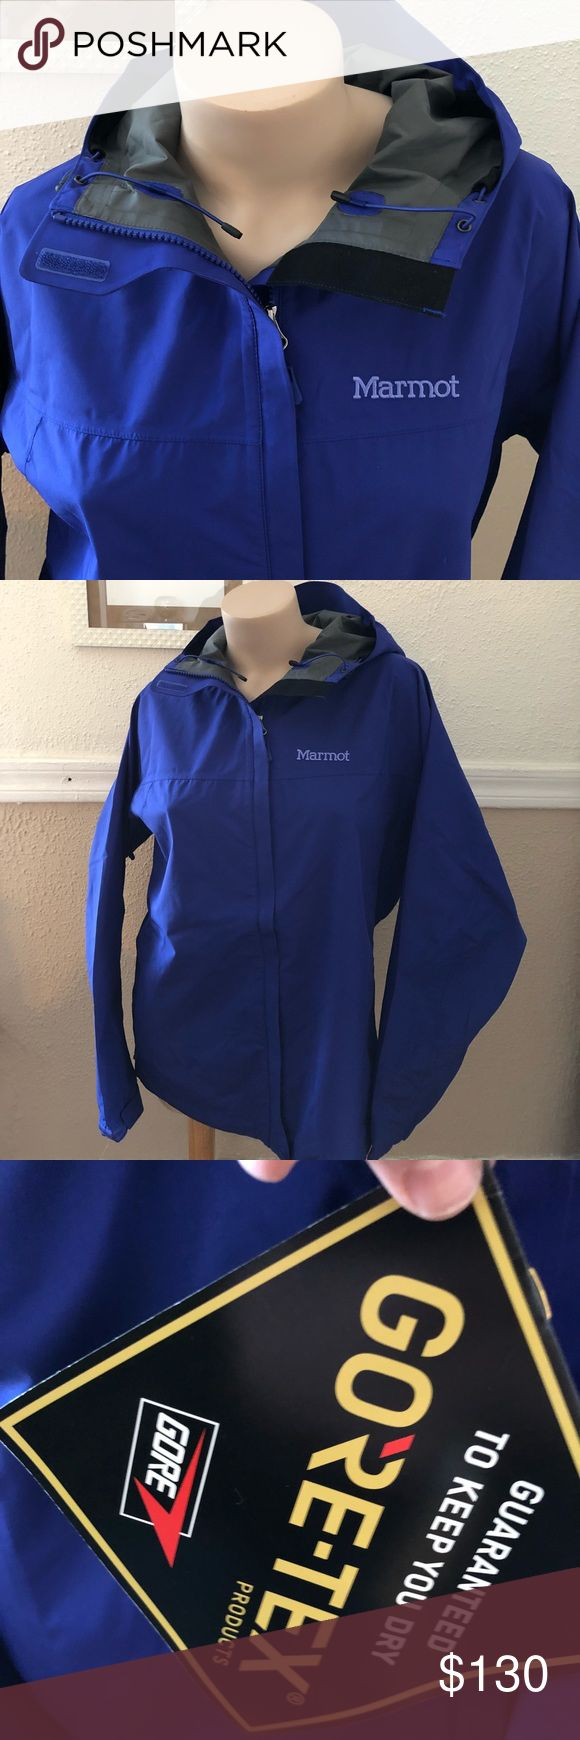 Marmot Minimalist Jacket with Gore-Tex New with tag in royal night. Size XL. Marmot Jackets & Coats